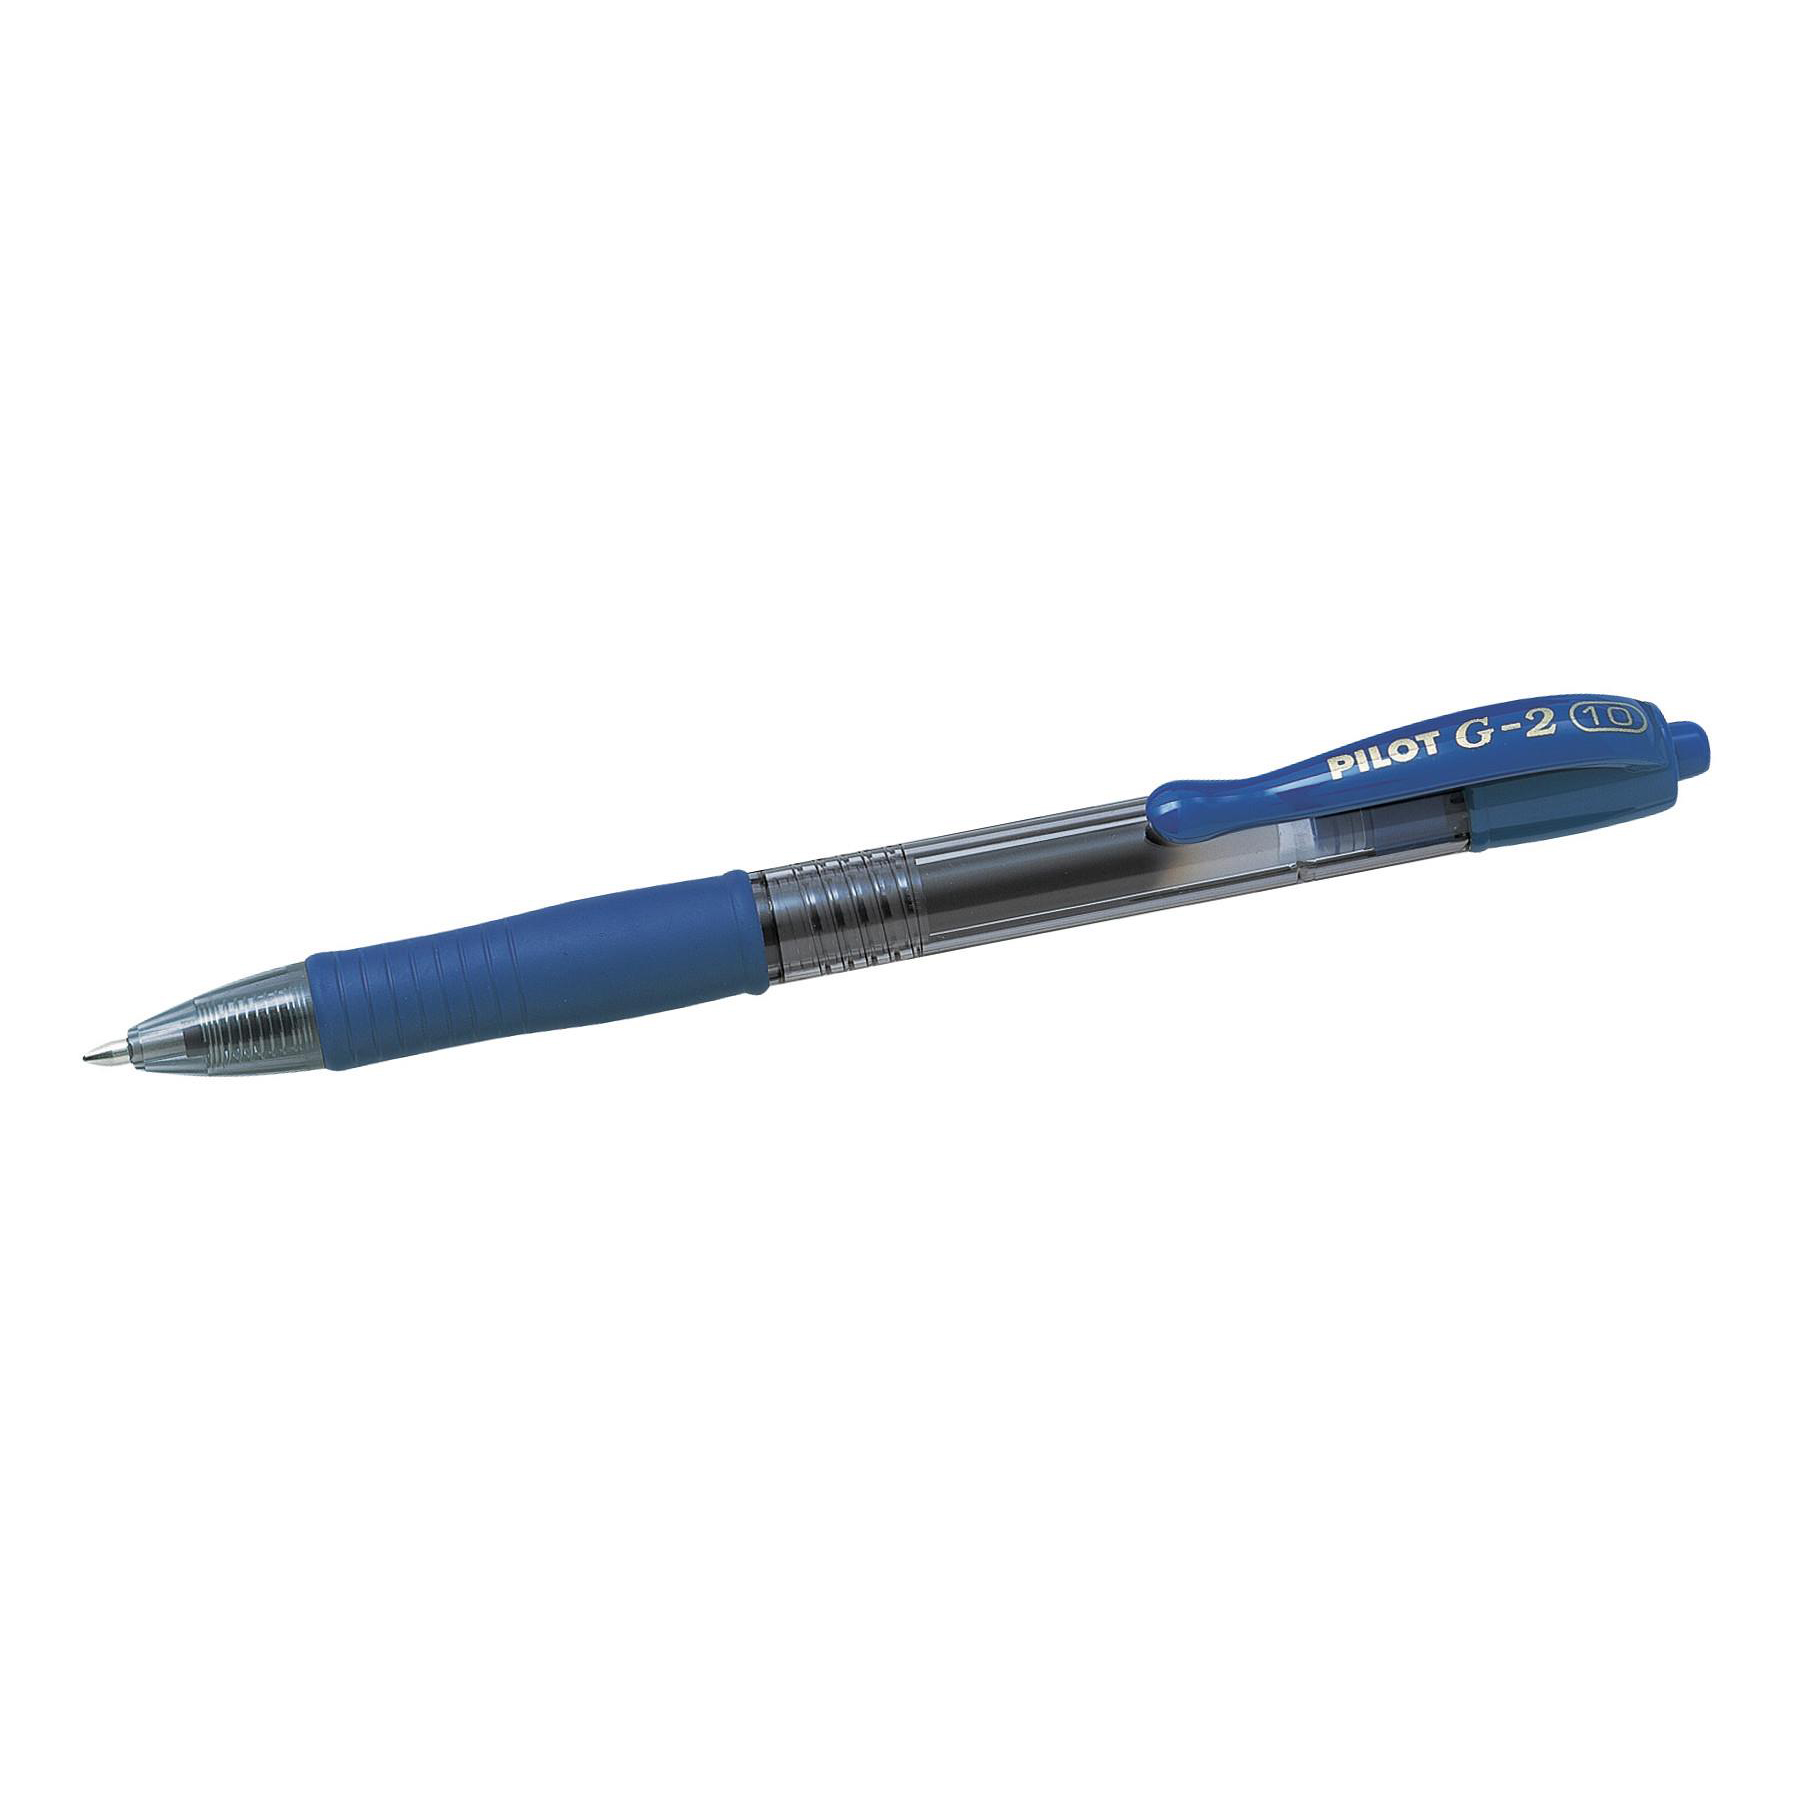 Pilot G210 Gel Rollerball Pen Rubber Grip Retractable 1.0mm Tip 0.48mm Line Blue Ref 043101203 Pack 12